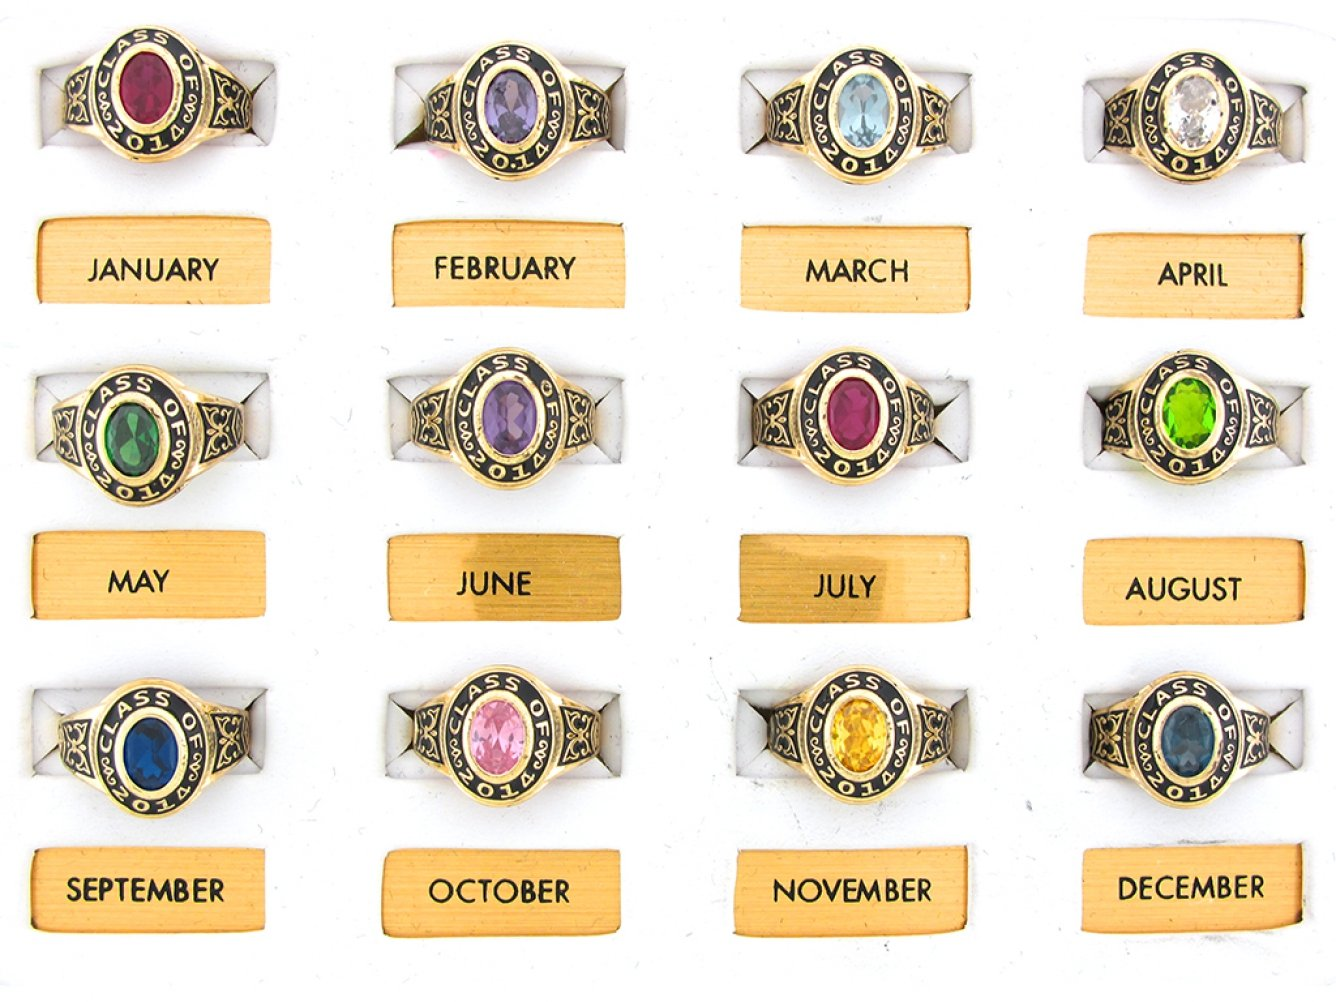 14k Gold Simulated January Birthstone 2019 Class Graduation Ring by Jewelry Liquidation (Image #3)